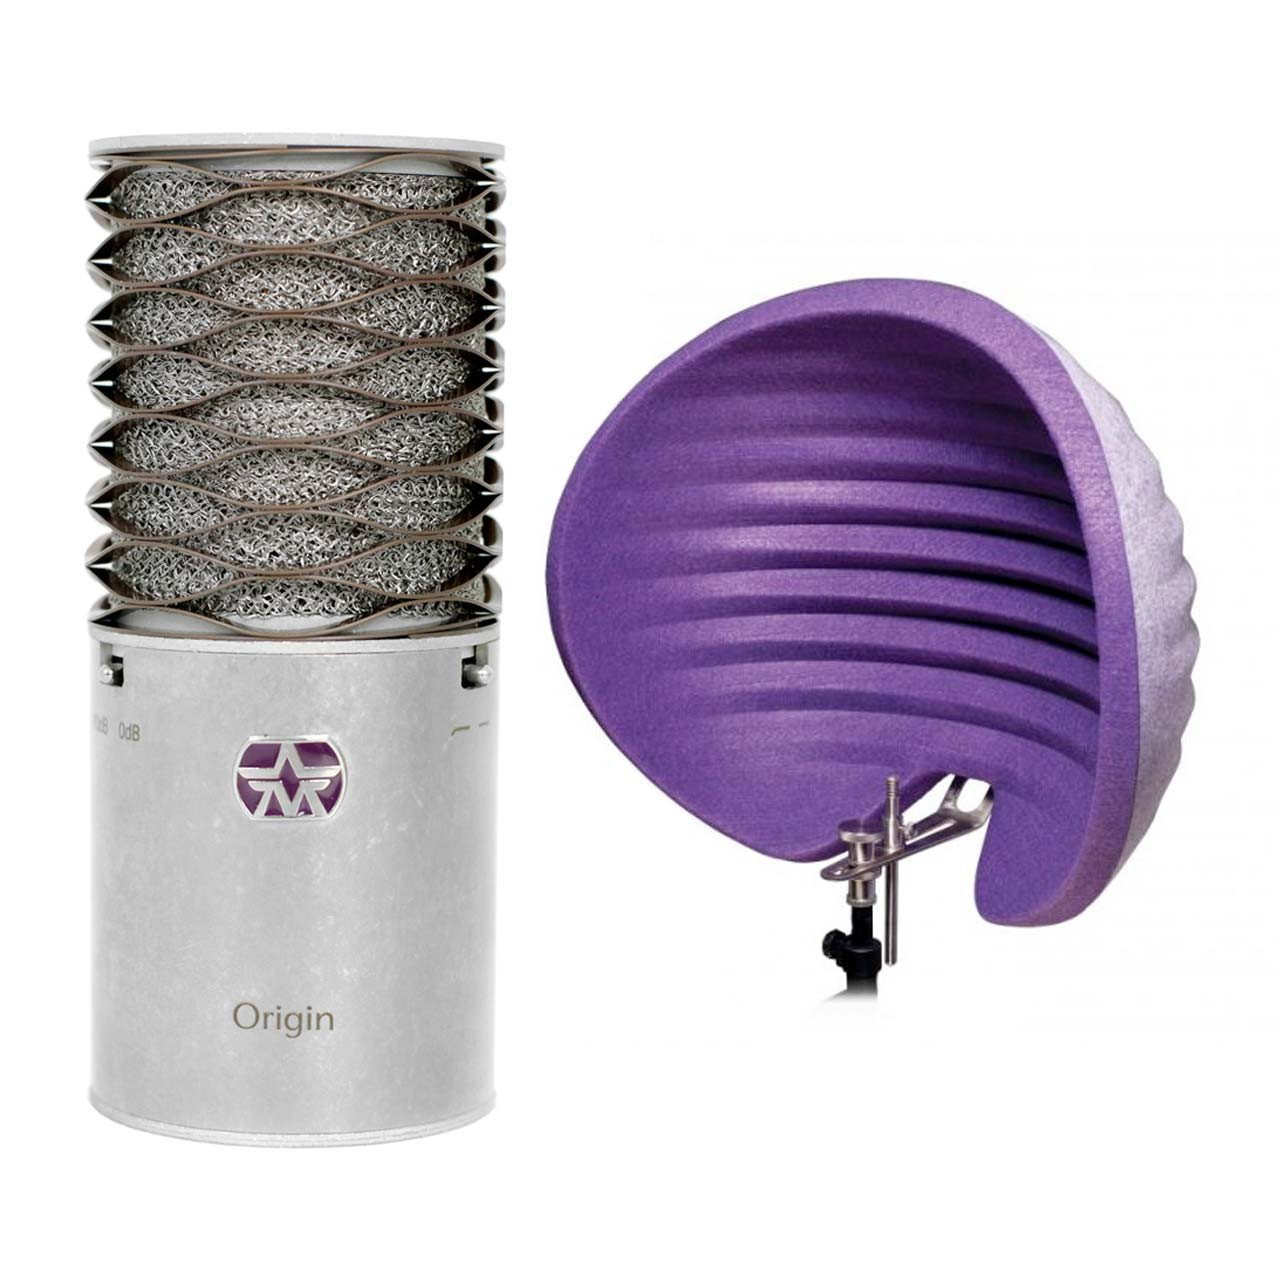 Condenser Microphones - Aston Origin Cardioid Condenser Microphone + Halo Reflection Filter